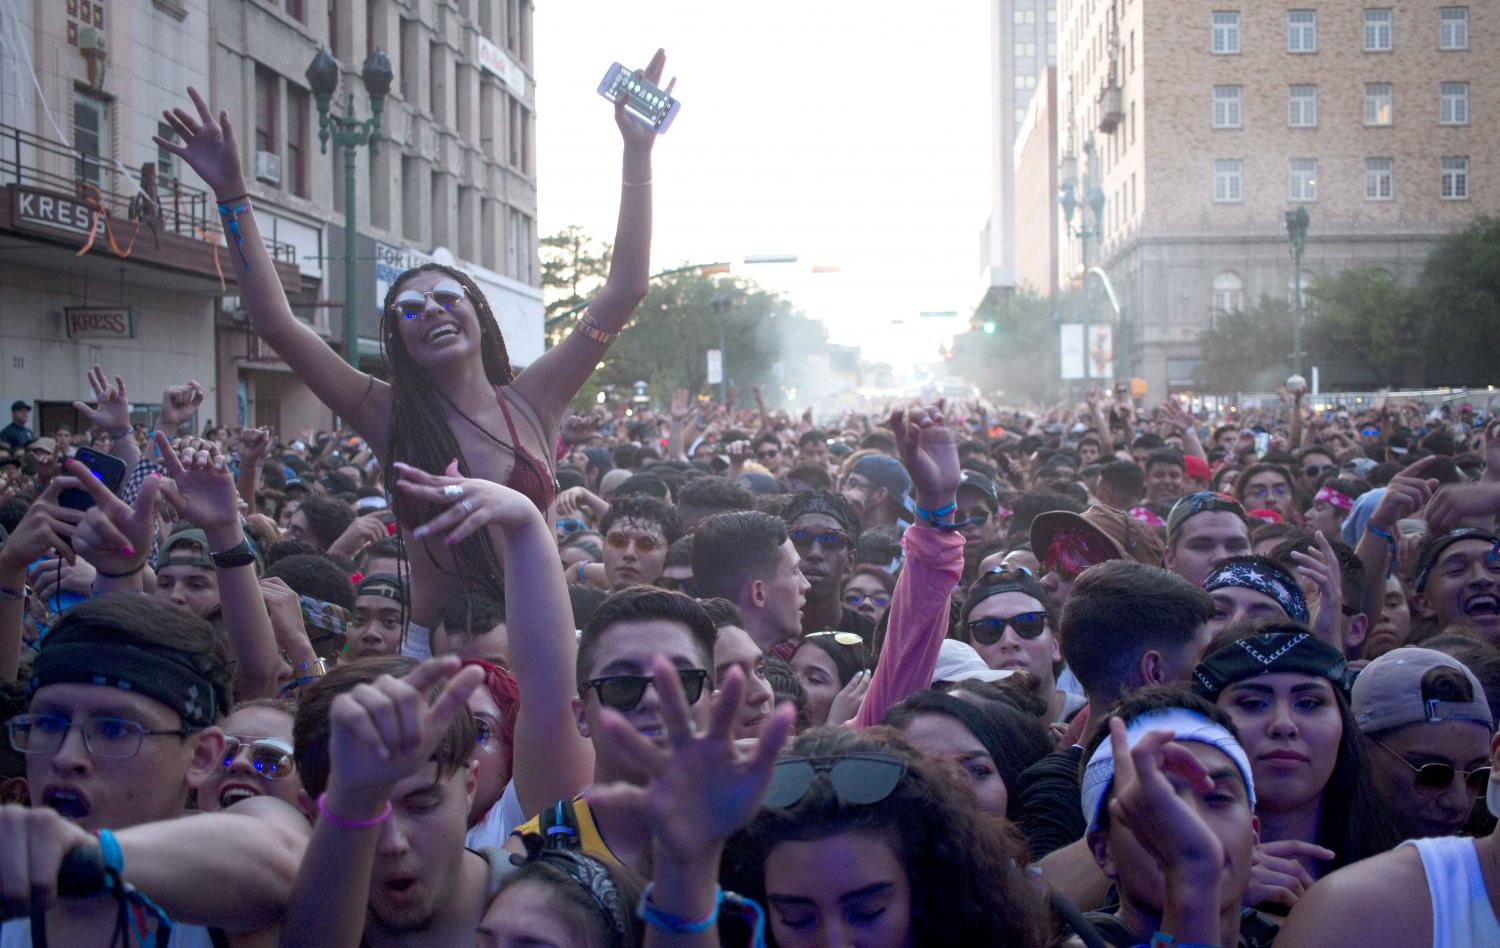 The audience at NDMF 2017 during Baauer's performance.